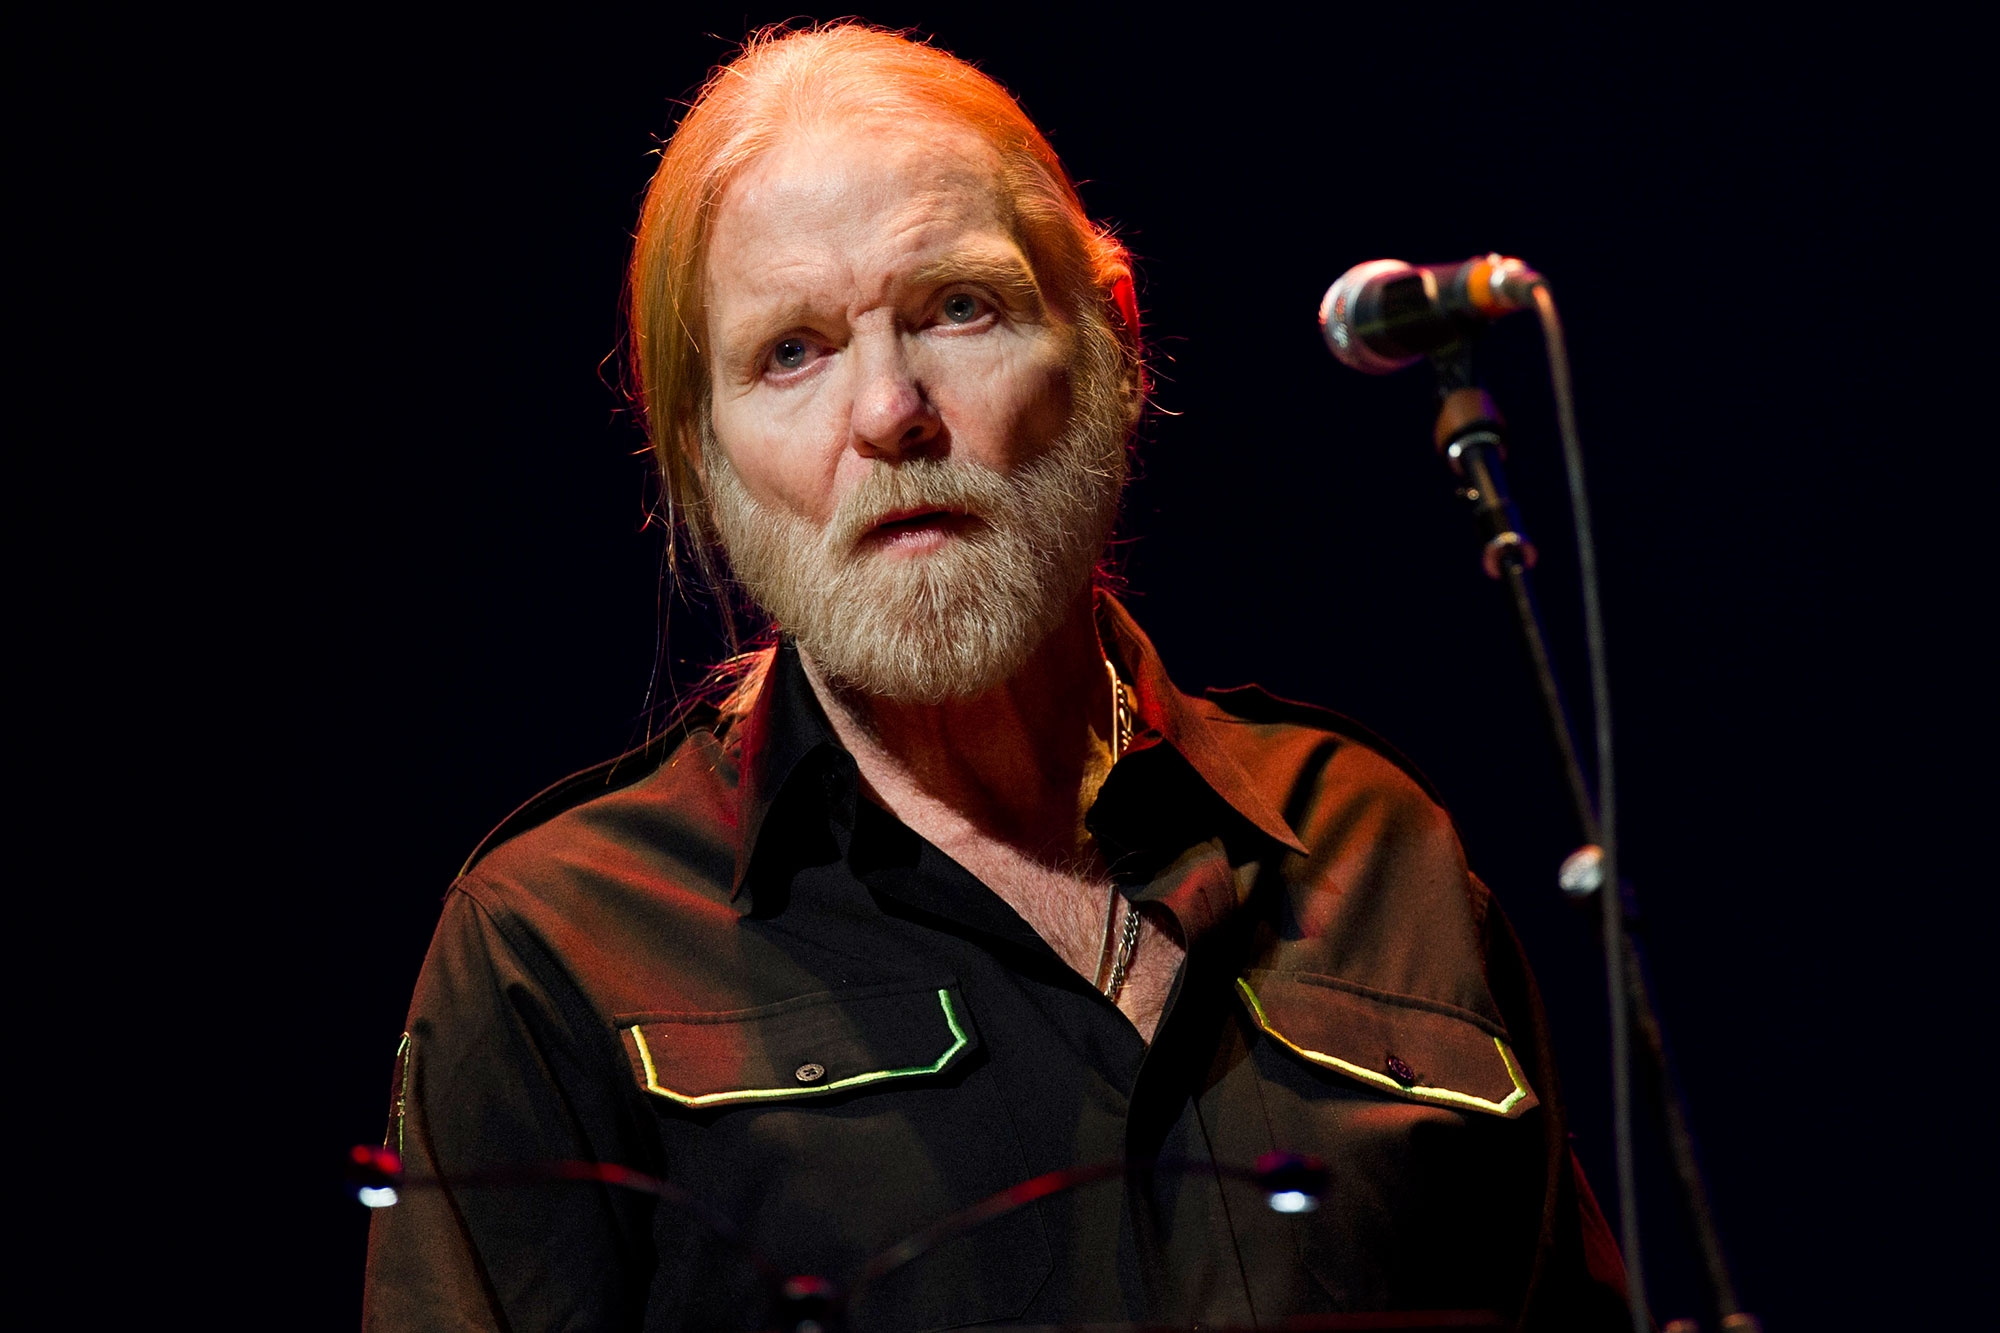 Gregg Allman, Founding Member of the Allman Brothers Band, Dead at 69